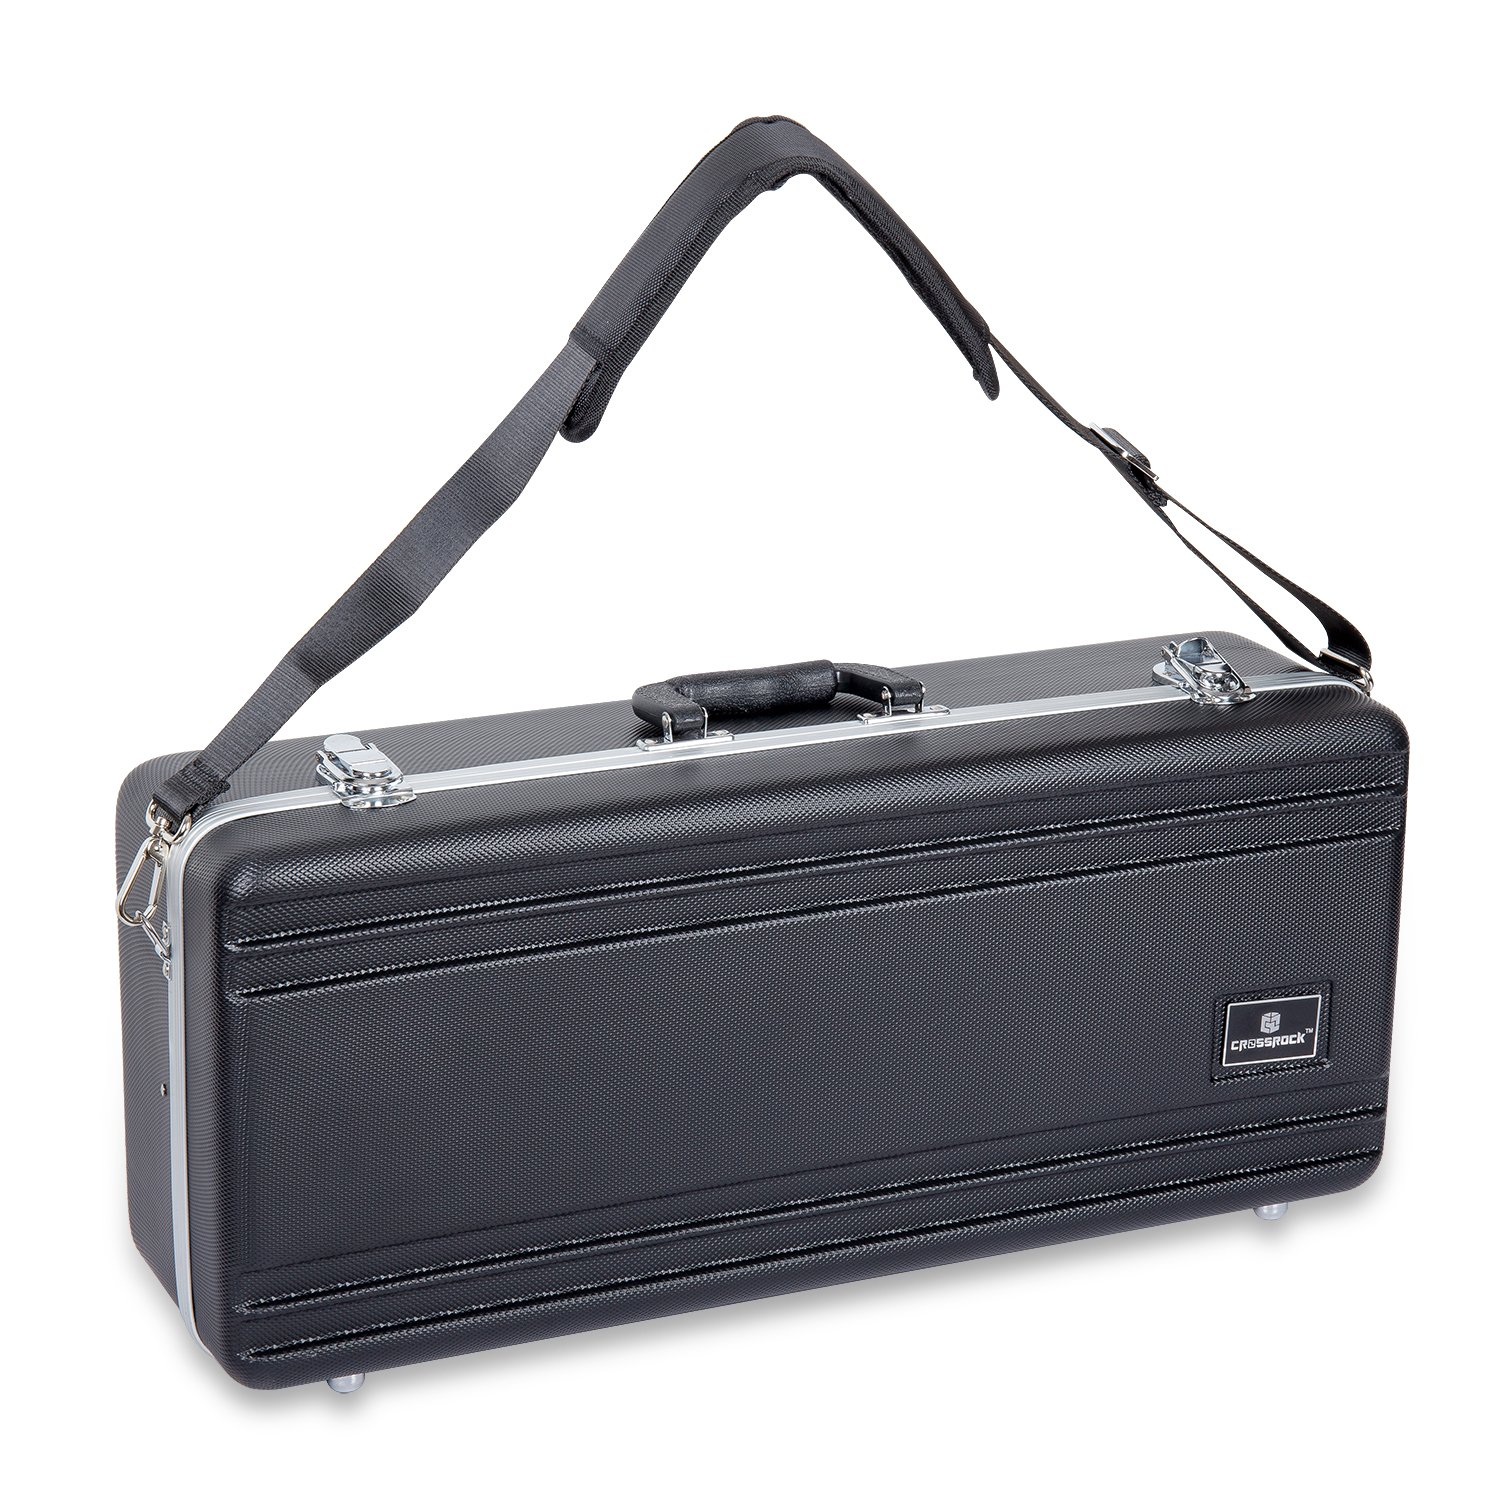 Crossrock CRA860ASBK-R Alto Saxophone Case- Rectangular ABS Molded with Single Shoulder Strap in Black